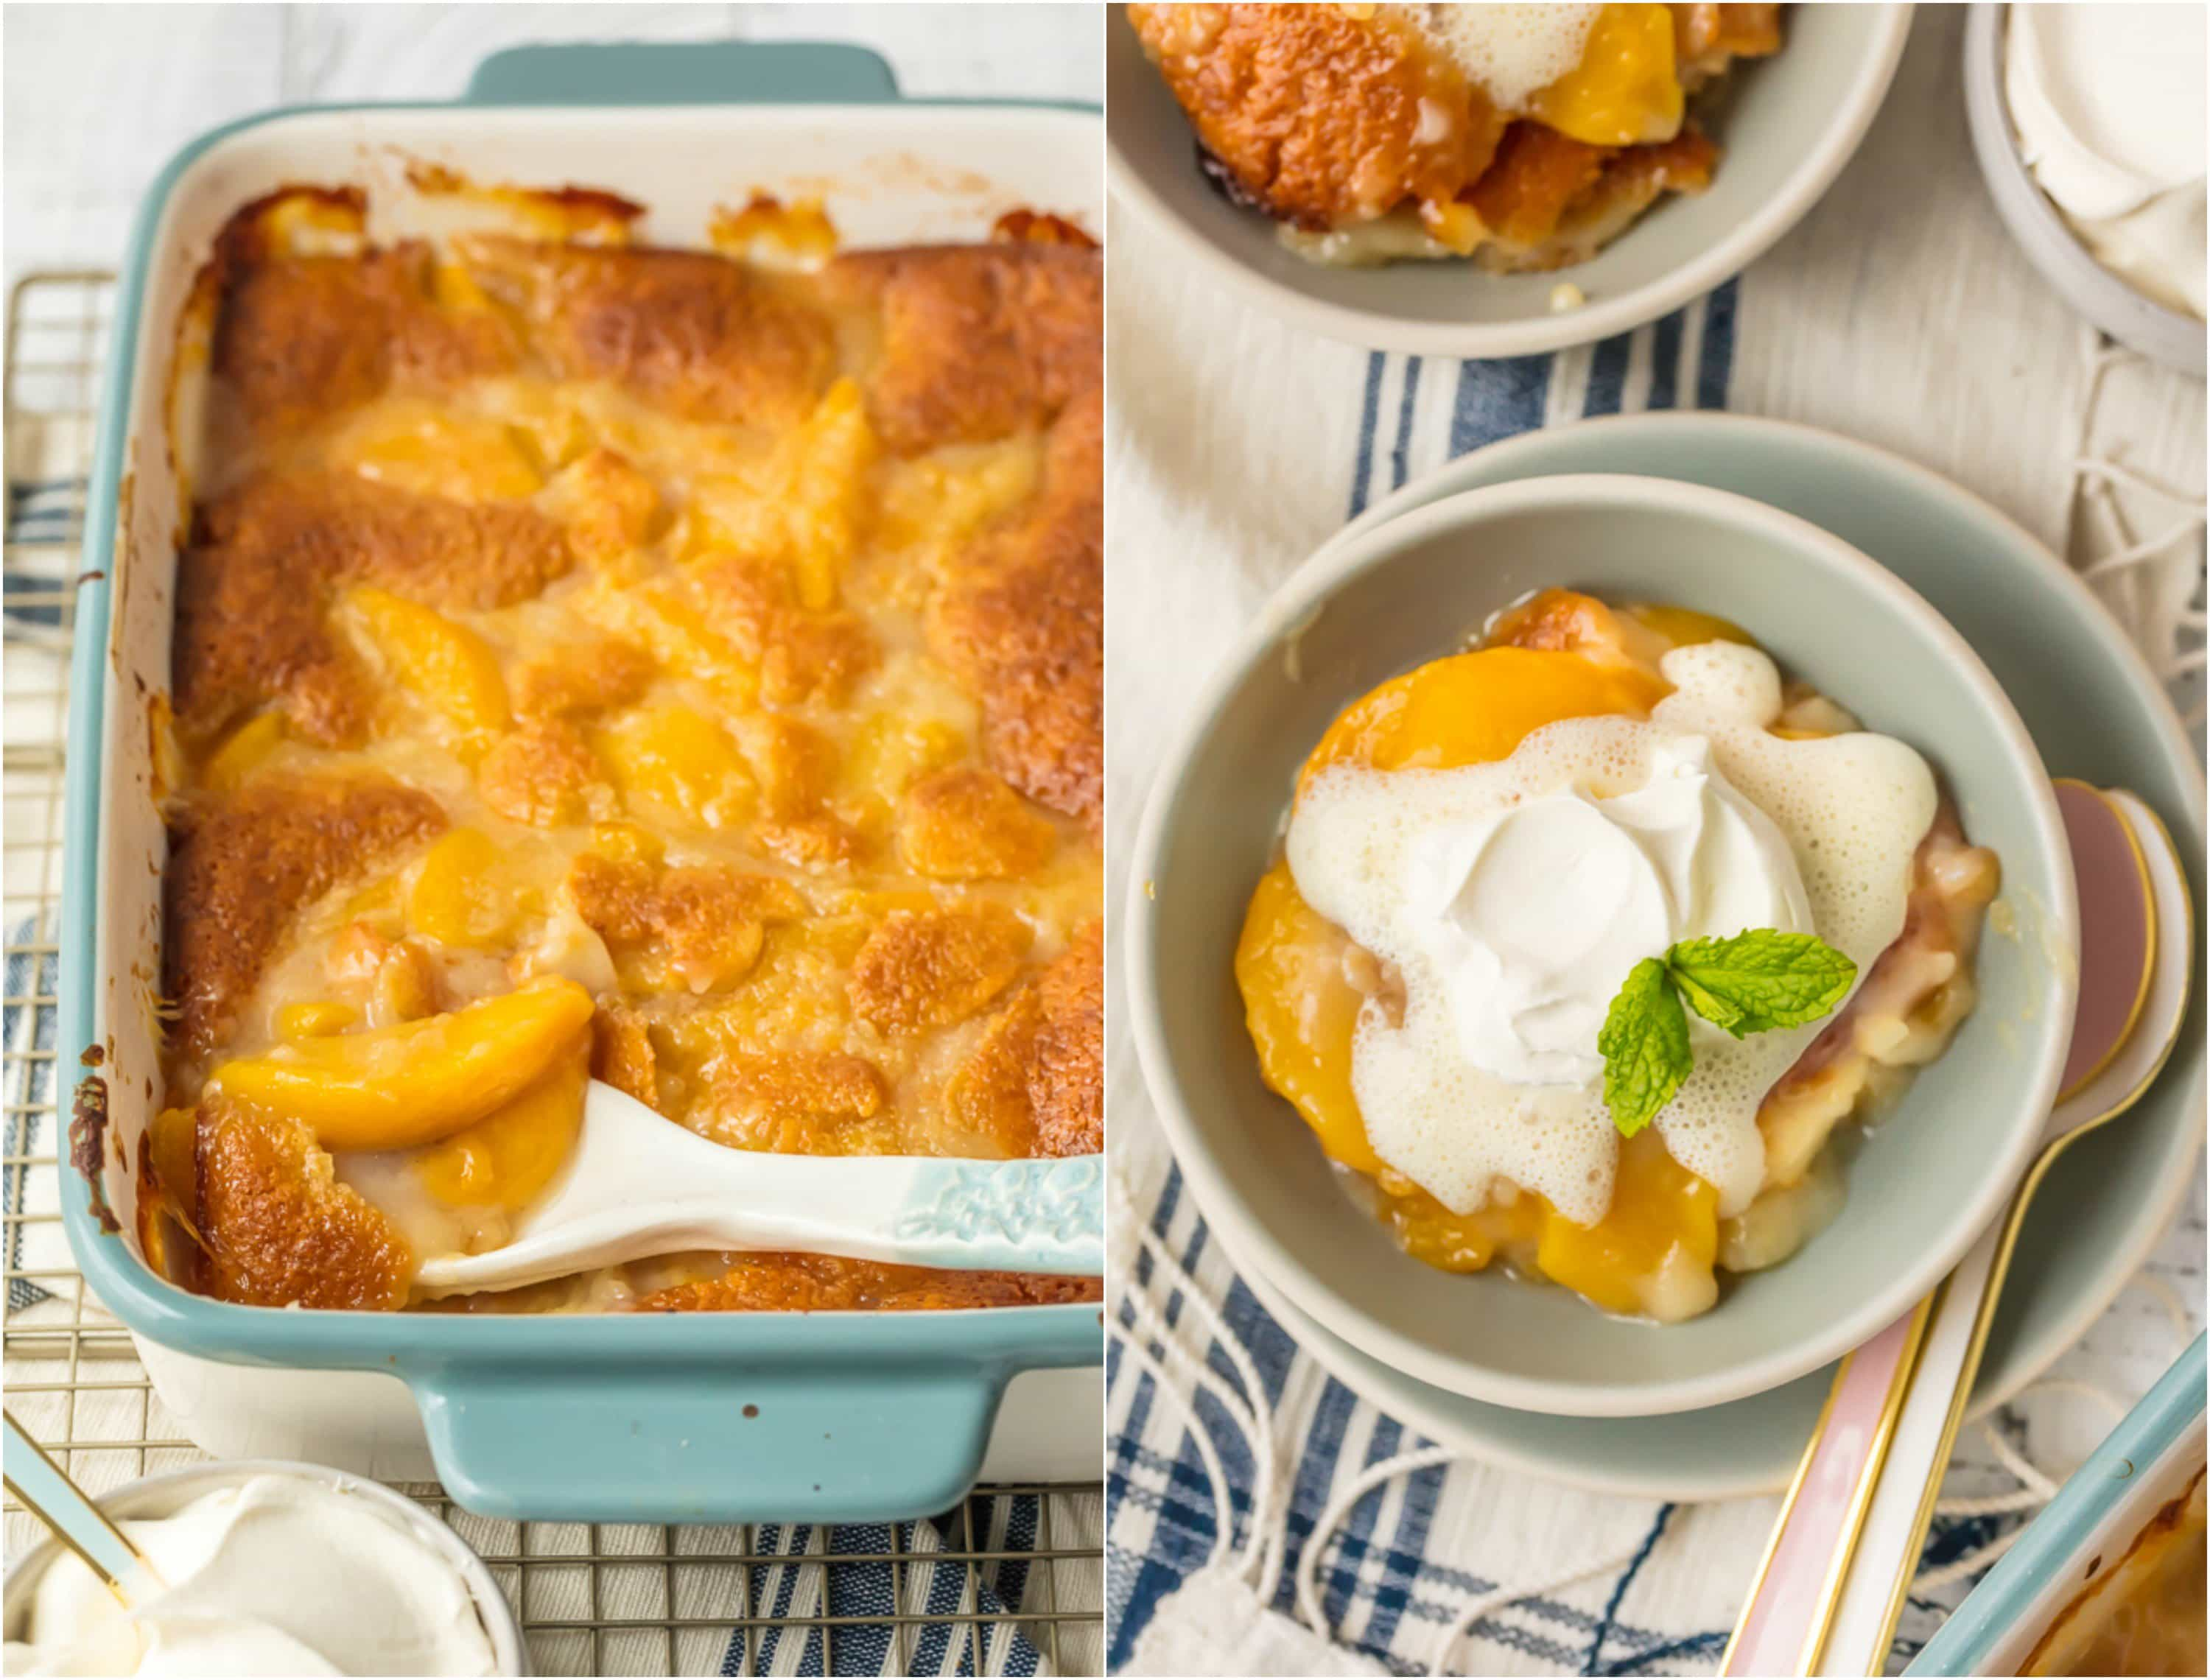 EASY Peach Cobbler Recipe is the stuff Summer recipe dreams are made of! This Best Peach Cobbler Recipe is so simple and only has 6 Ingredients (7 if you count the whipped cream). Peach Cobbler with Canned Peaches can be made year round and is so full of flavor you'll swear it was made by Grandma. It's a must make for every holiday including Easter, 4th of July, Thanksgiving, and Christmas!